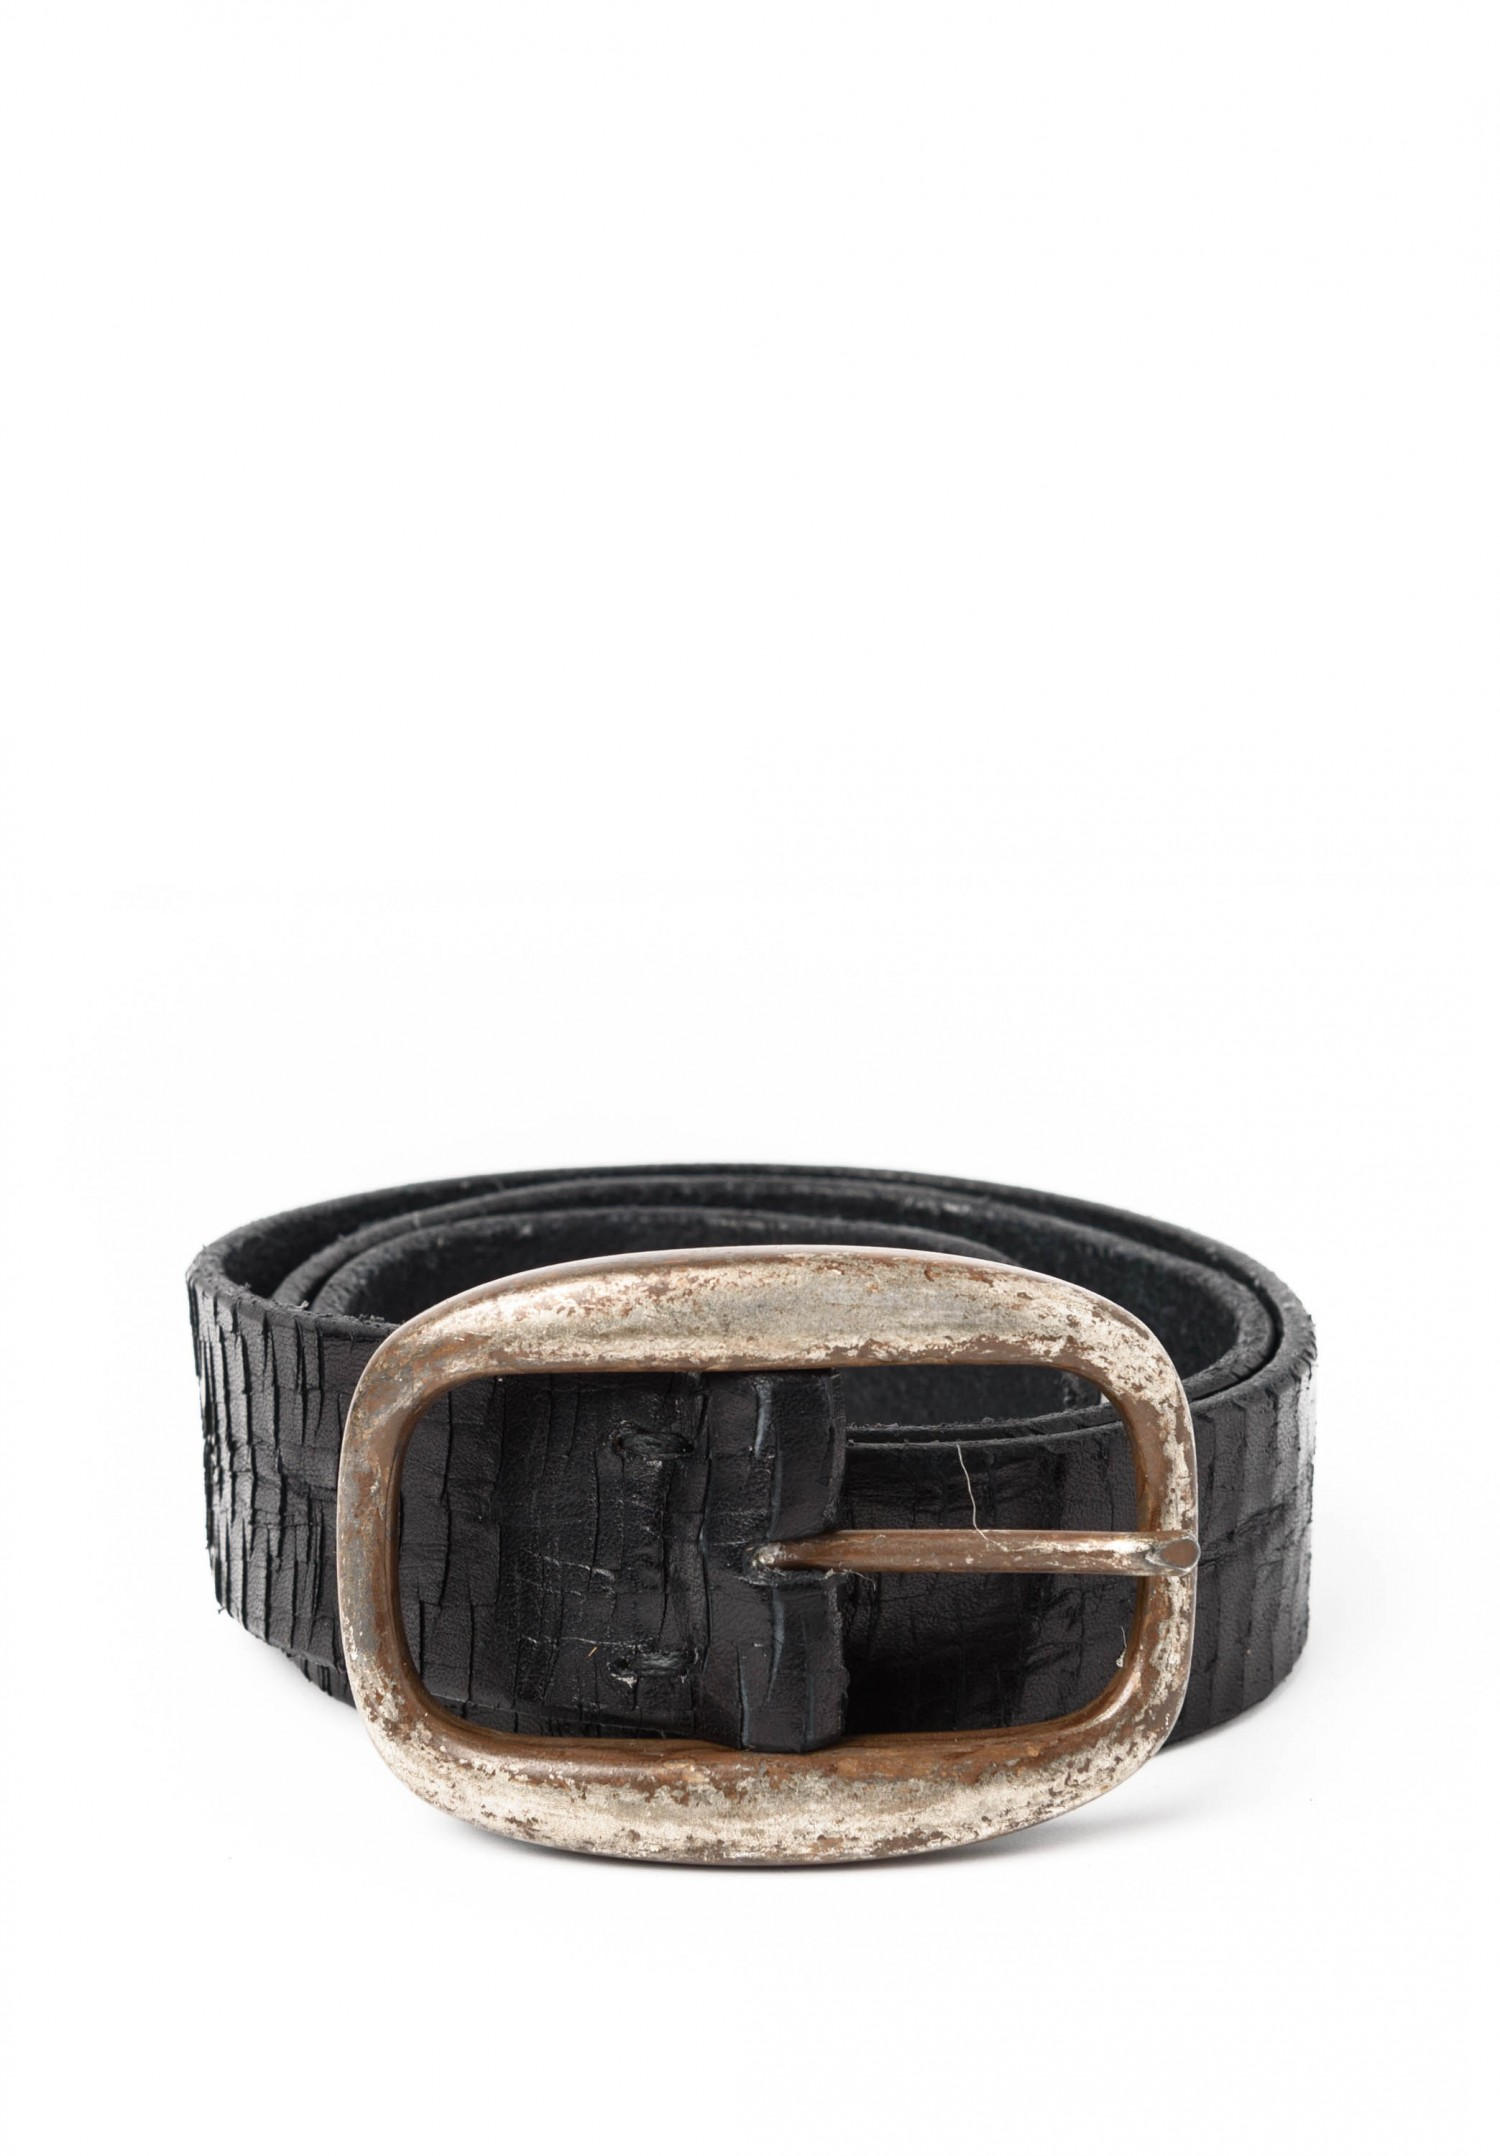 riccardo forconi scored leather belt in black santa fe